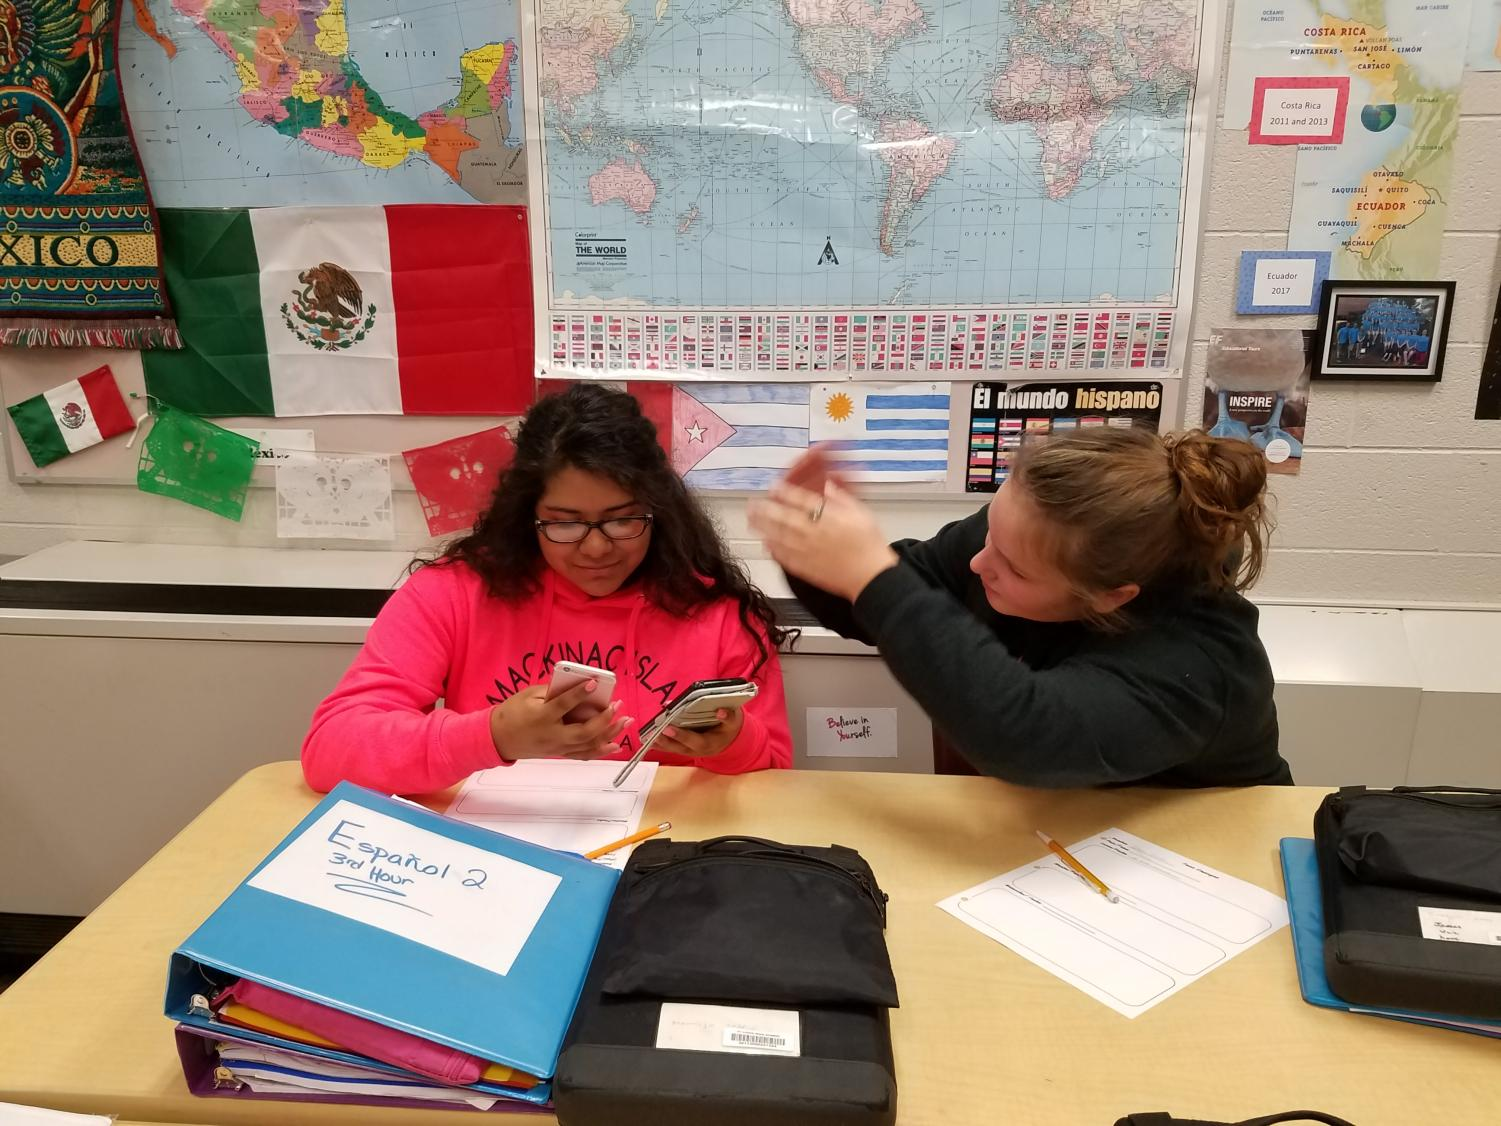 Valentina Memije (left) is too distracted by her phones to see her classmate asking for help.